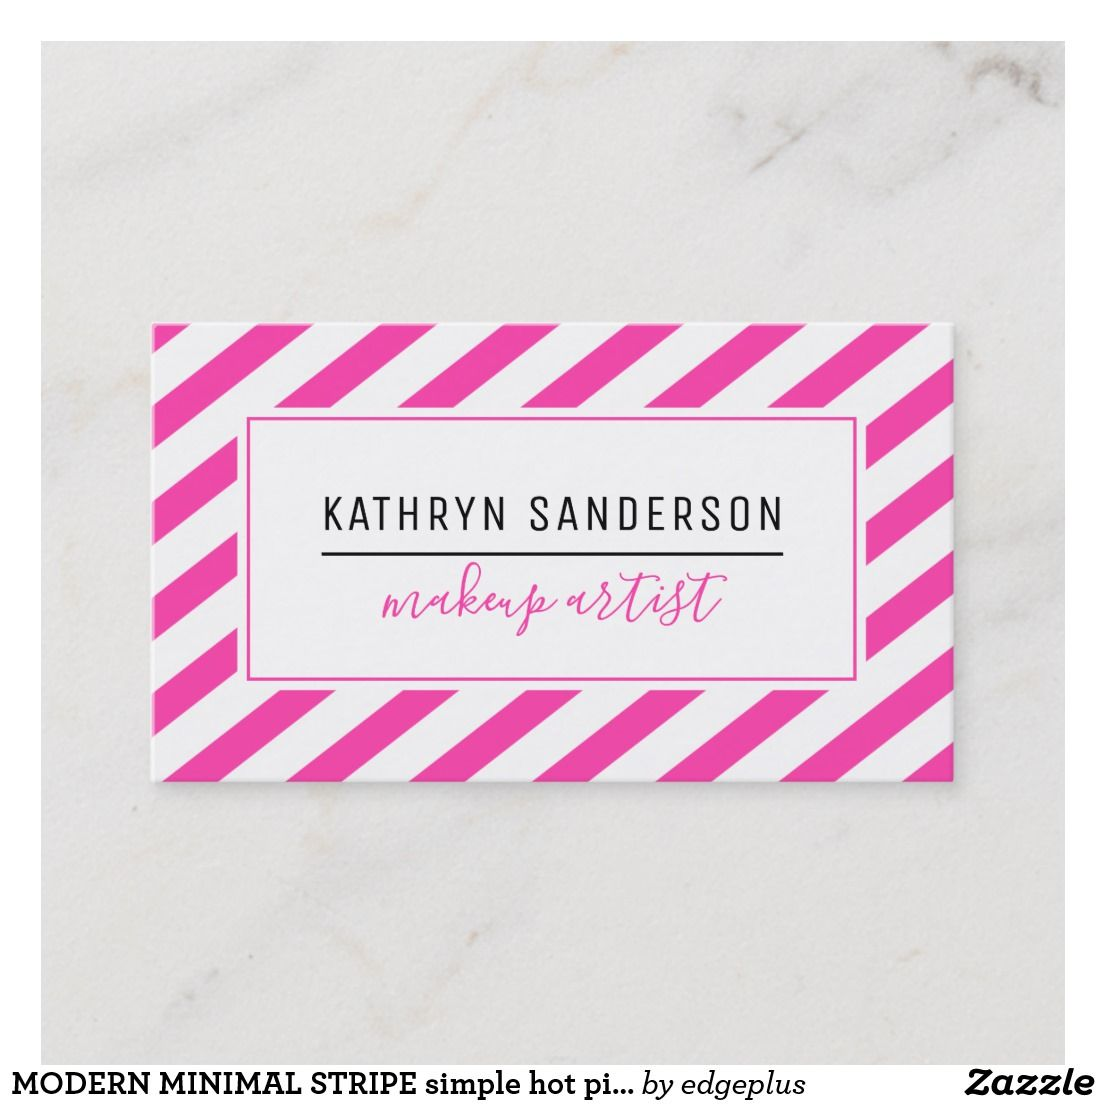 Hot Pink Business Card Design Pink Business Card Business Card Design Media Business Cards